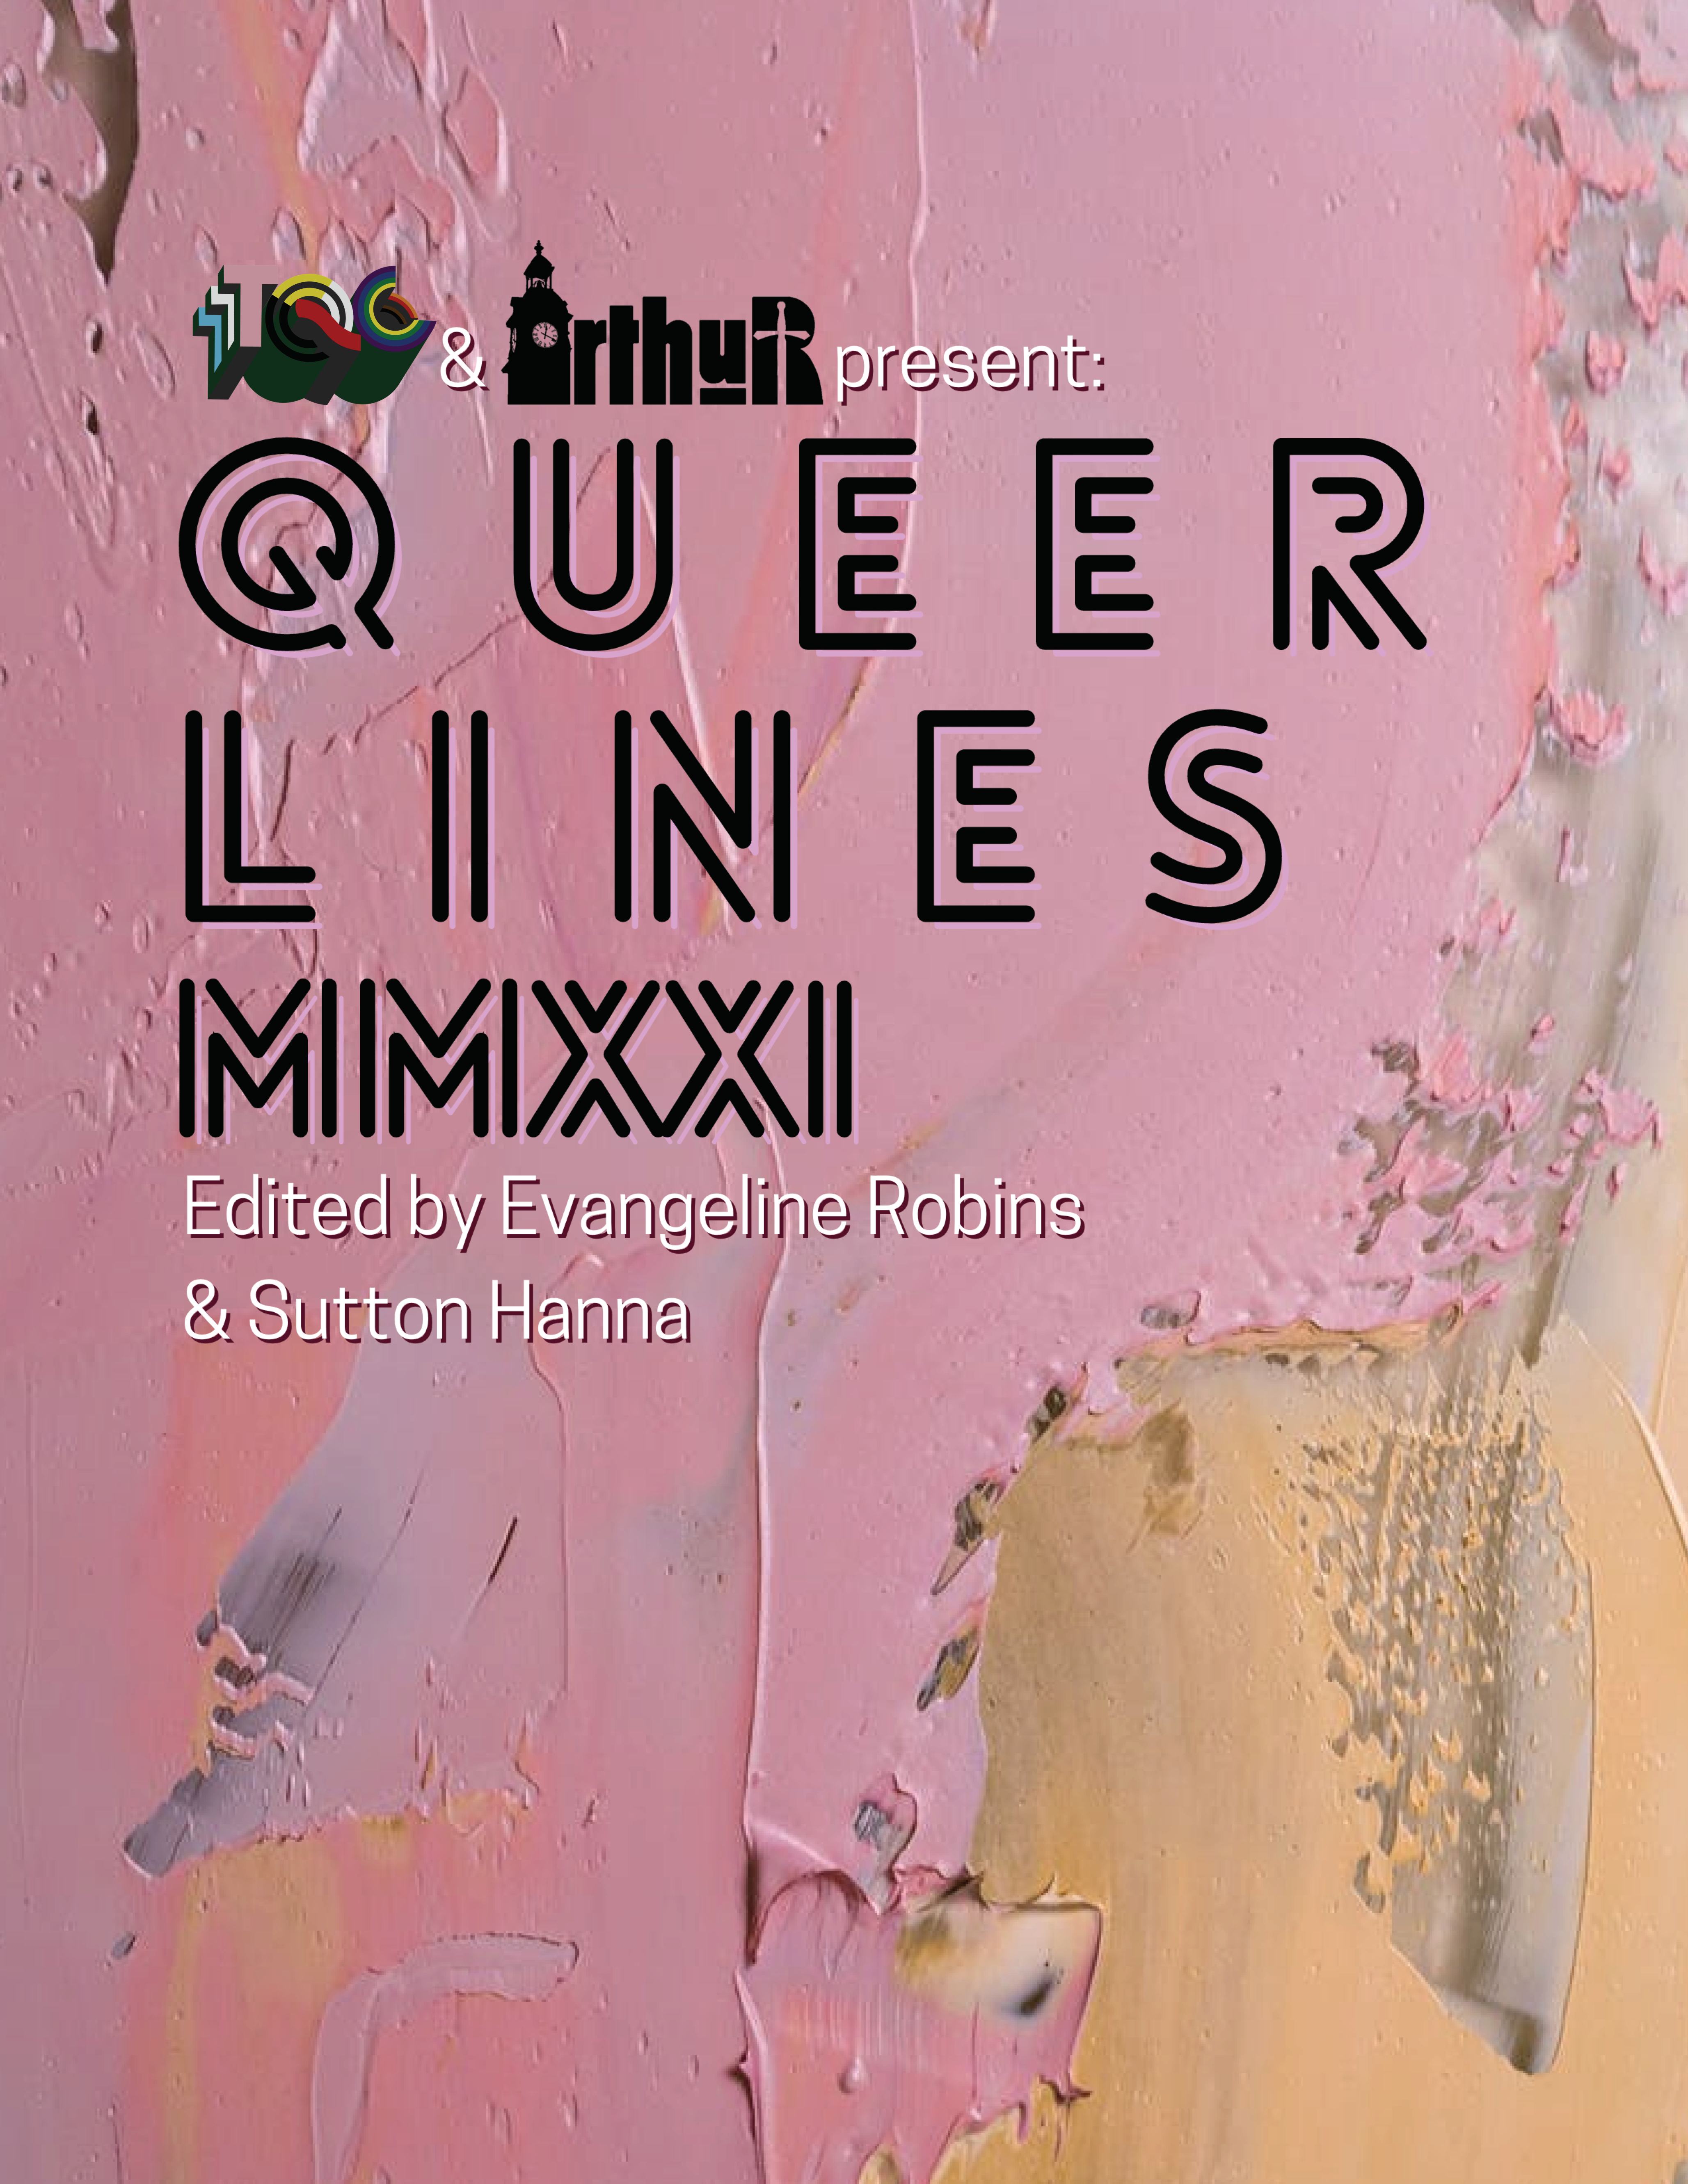 Queerlines MMXXI